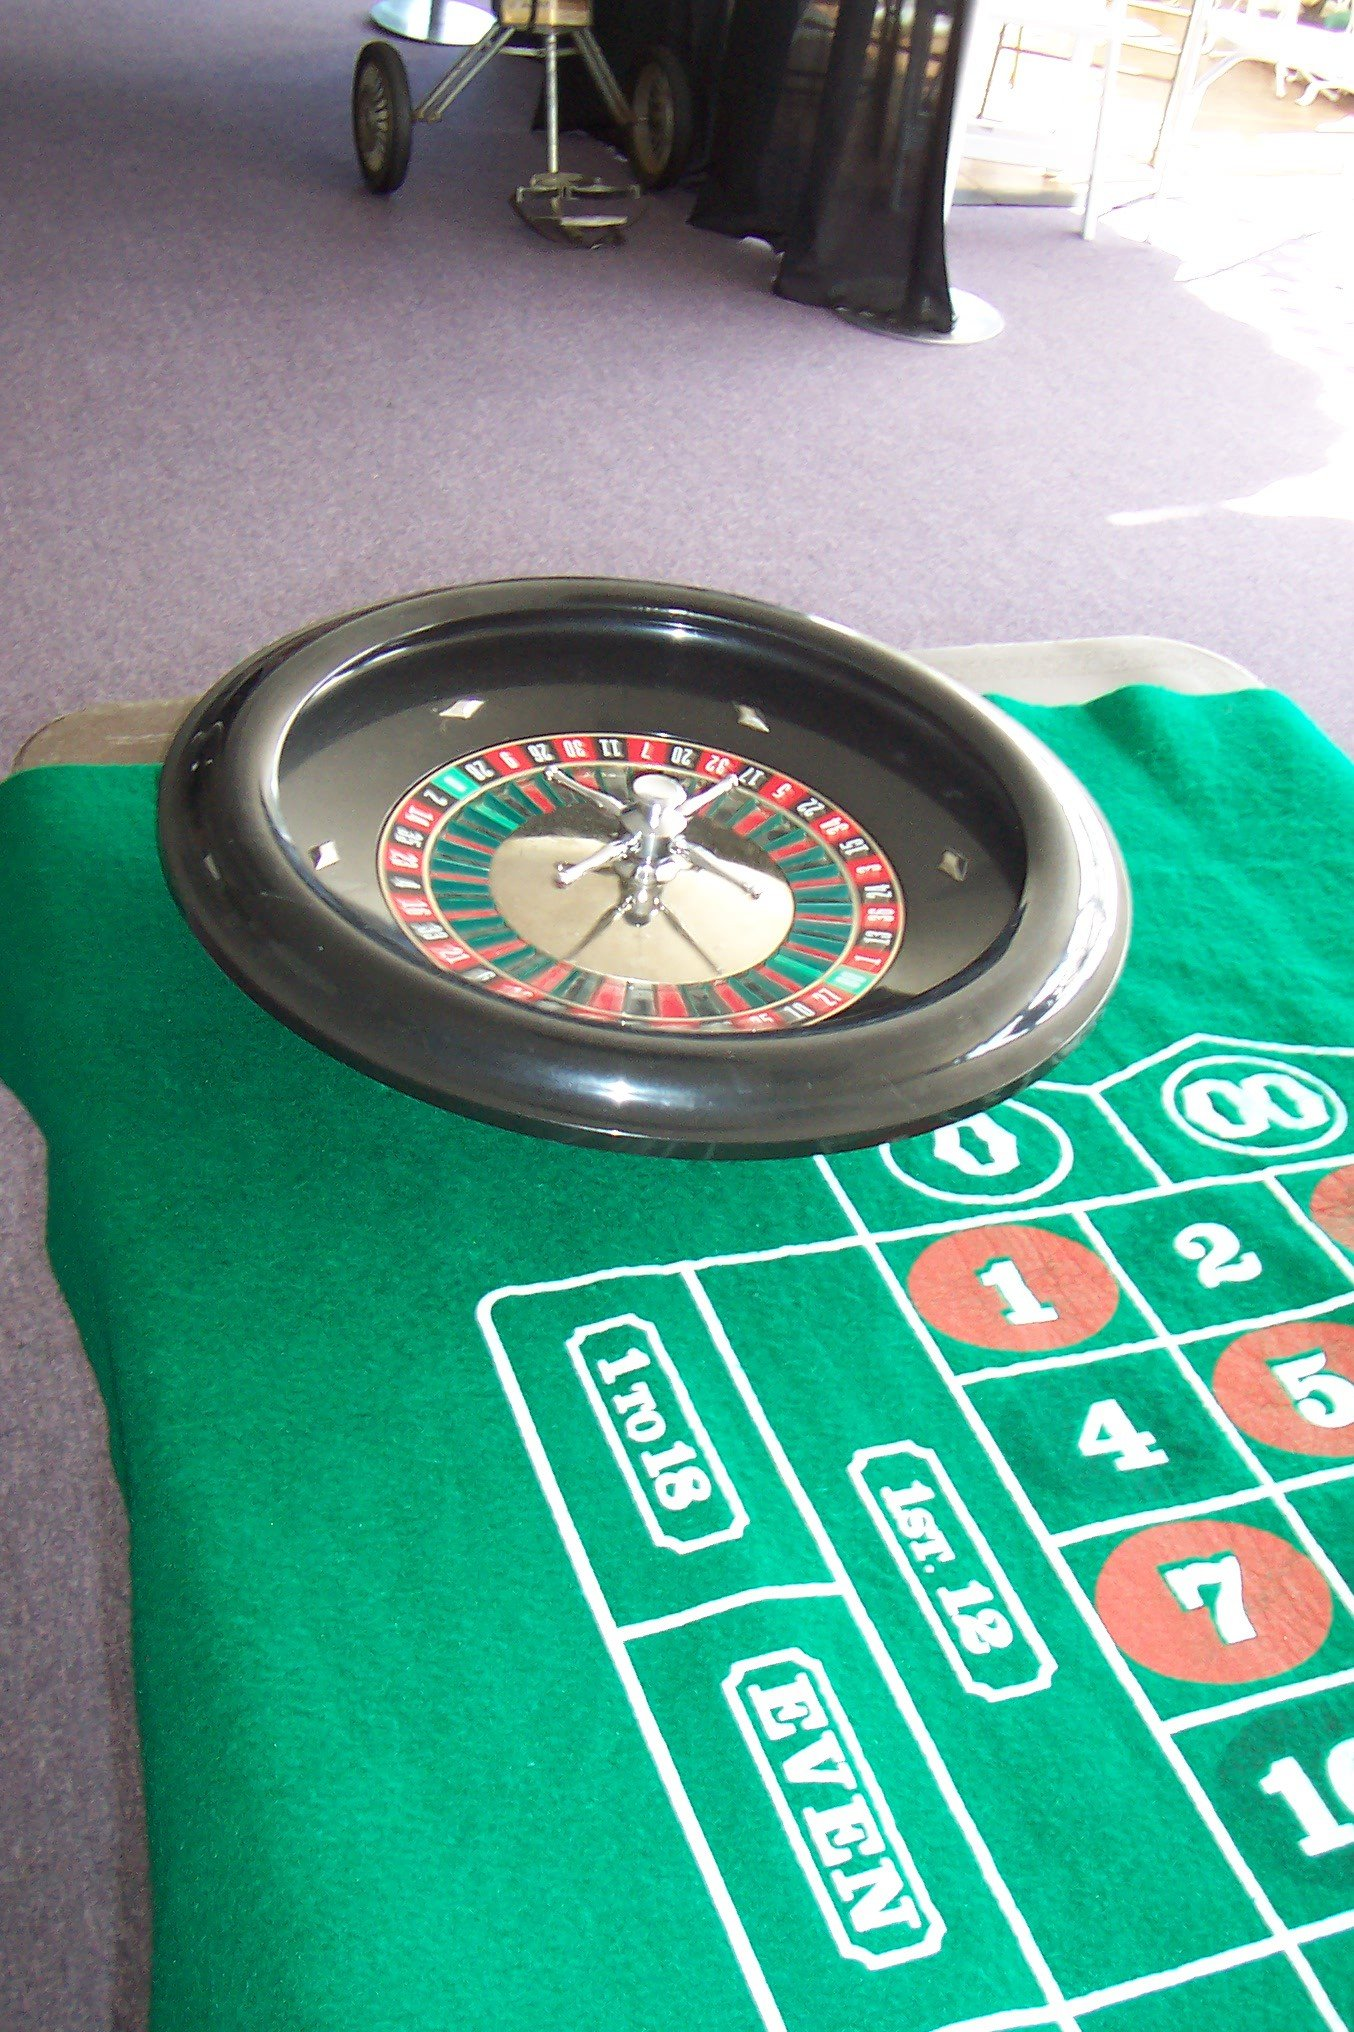 Wheel roulette game